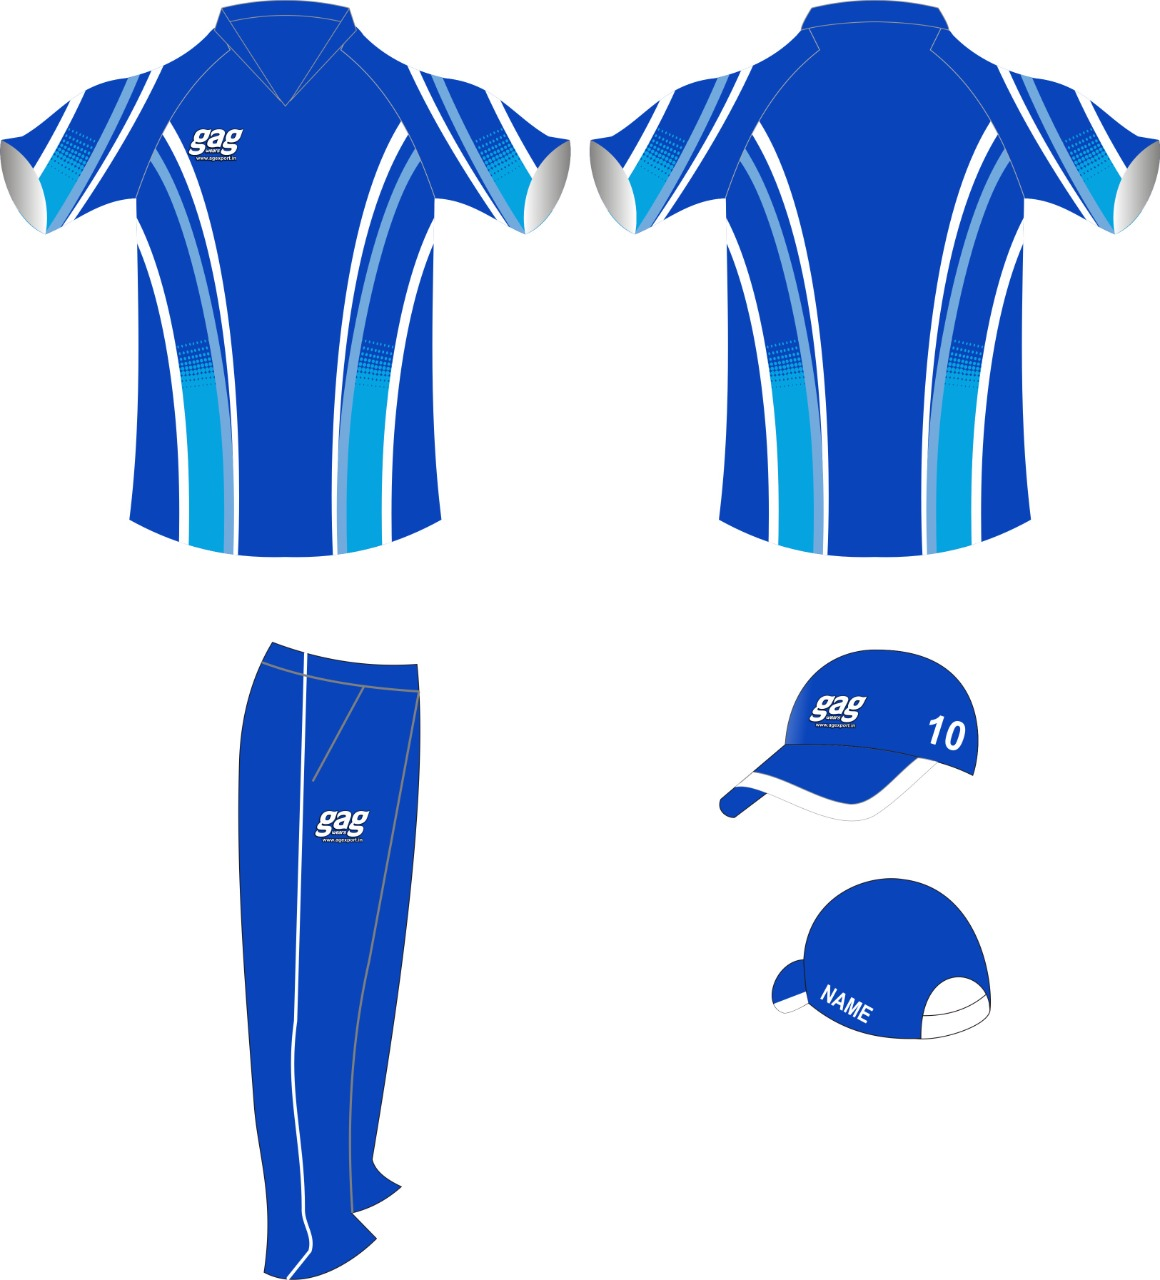 Cricket Shirts Manufacturers in Jalandhar in Australia